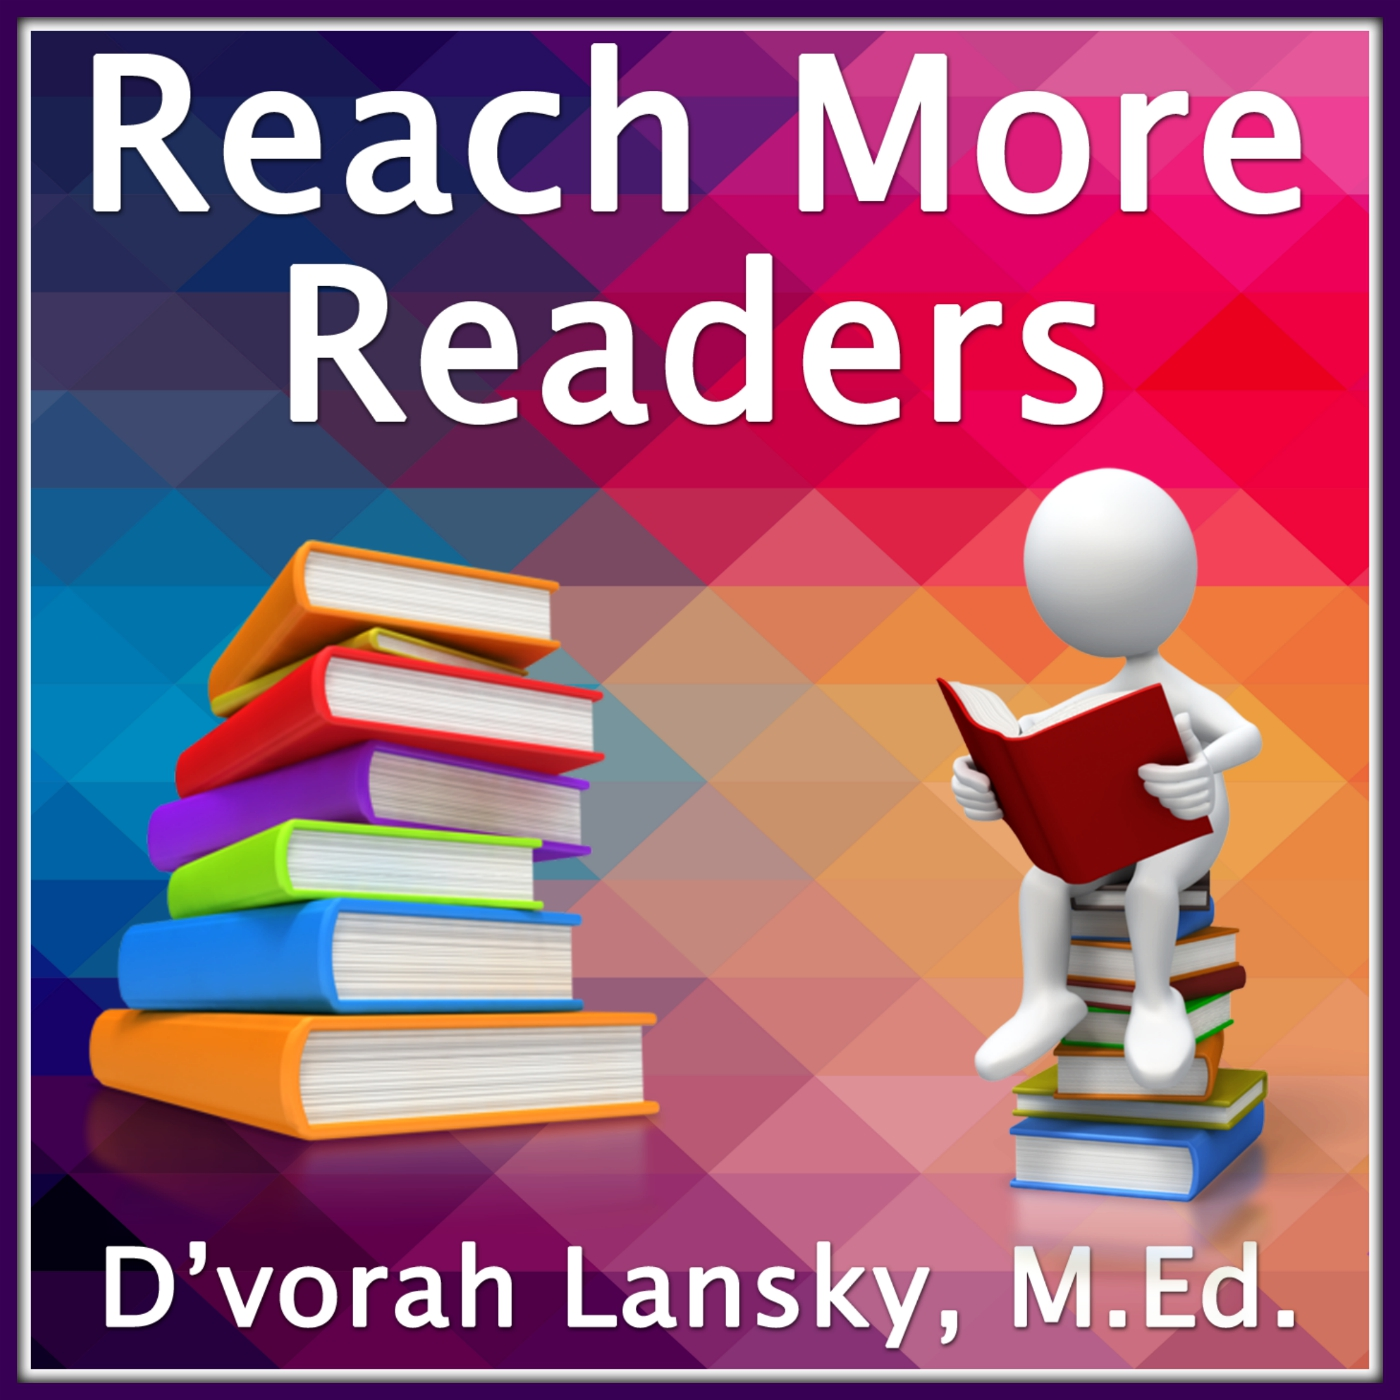 Reach More Readers